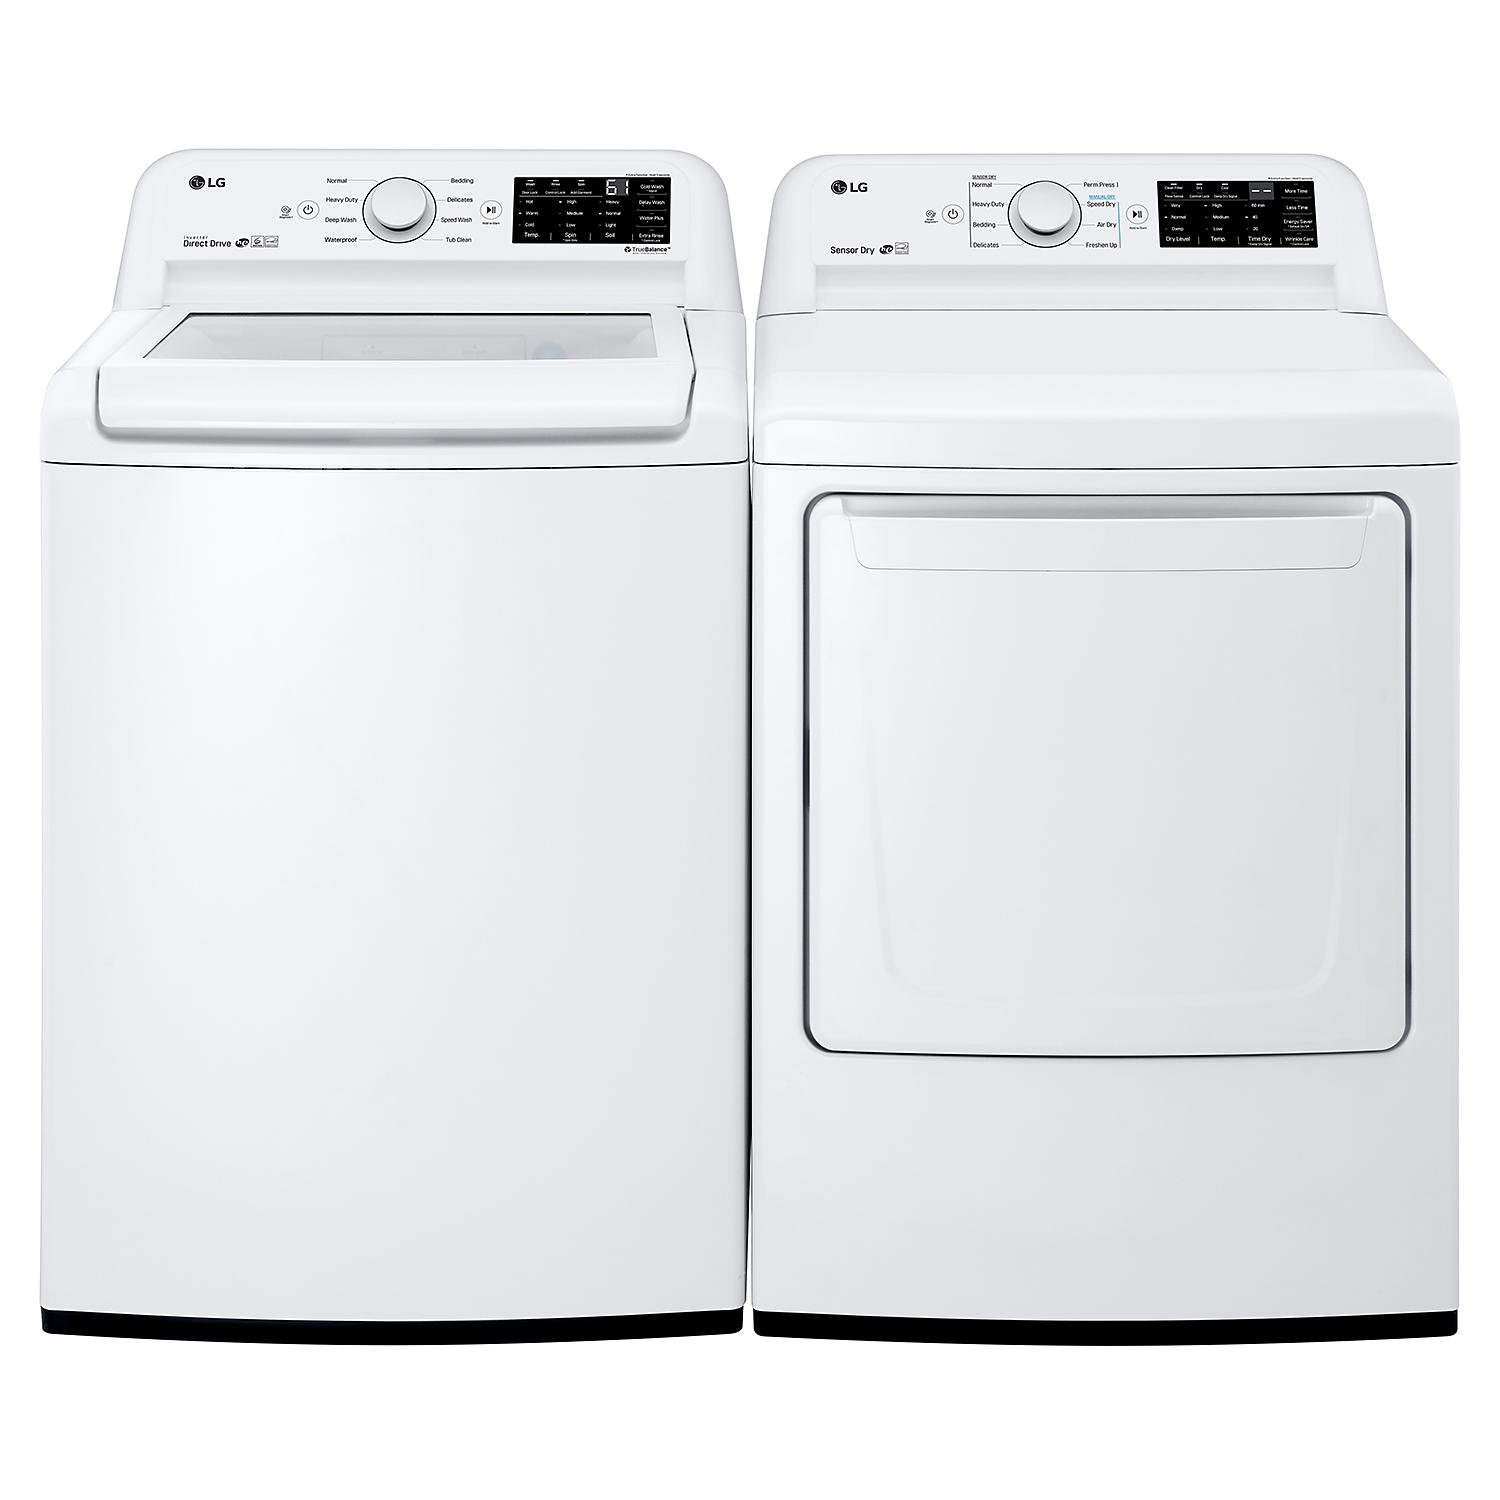 LG Side-By-Side Washer & Dryer Set